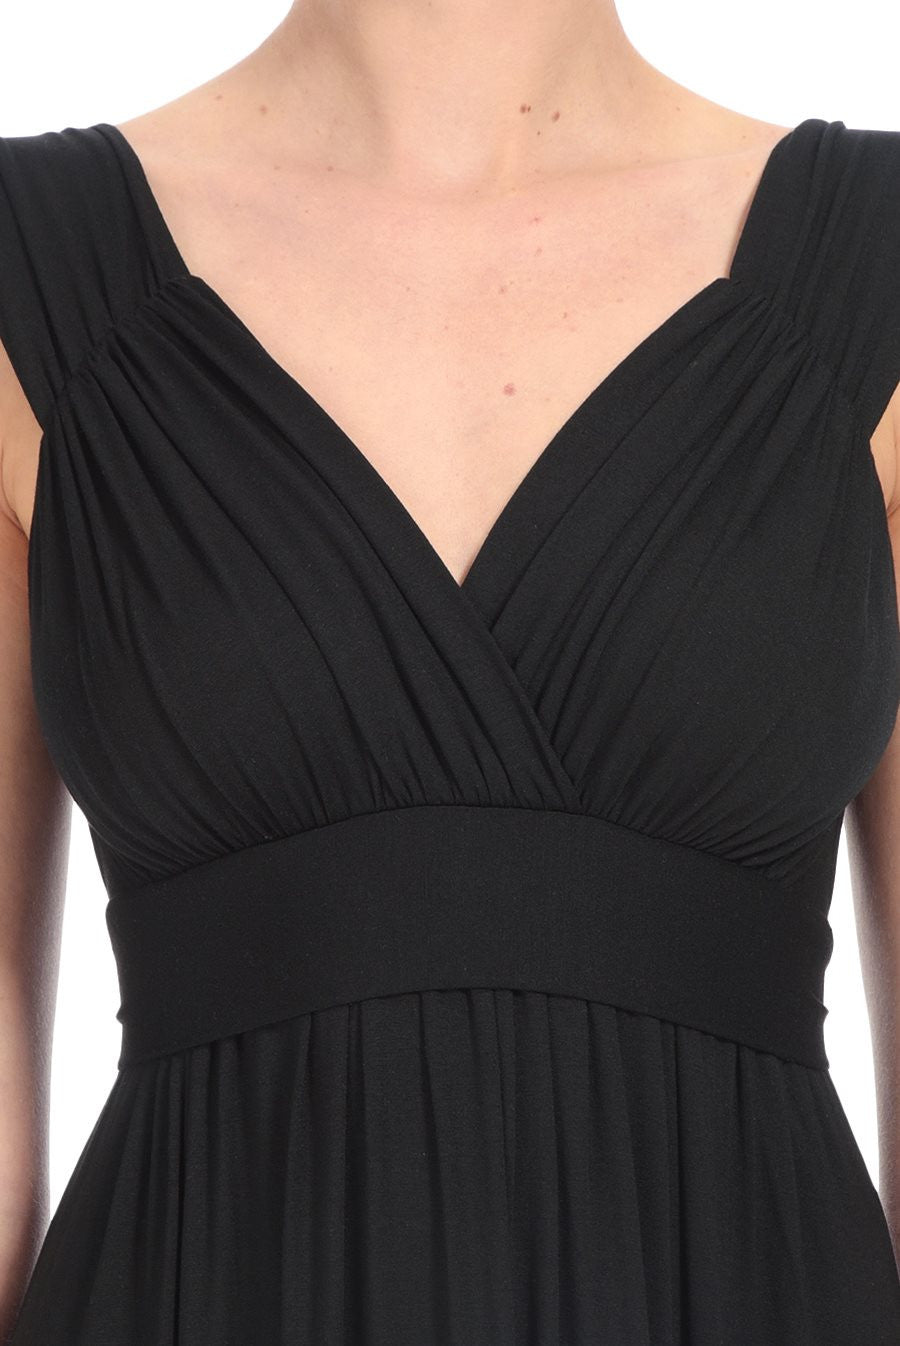 NEWPORT DRESS - BLACK